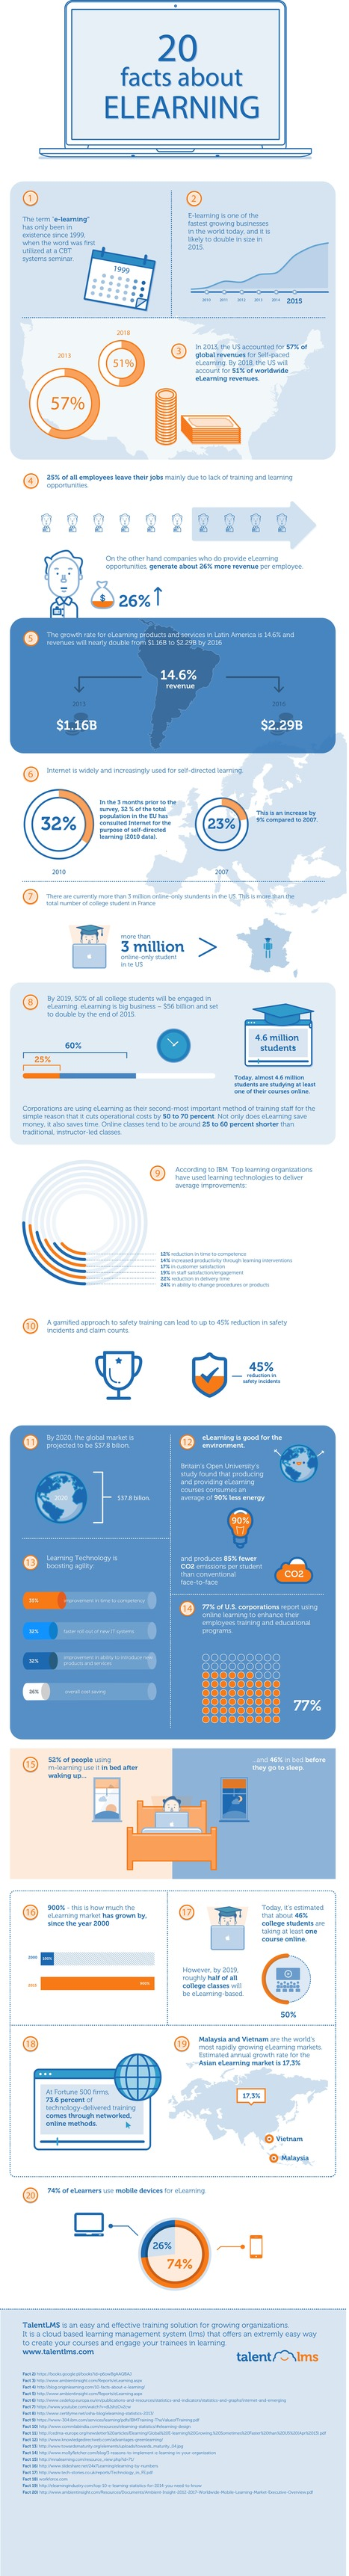 20 Facts About the Impact of E-Learning [#Infographic] | E-Learning and Online Teaching | Scoop.it